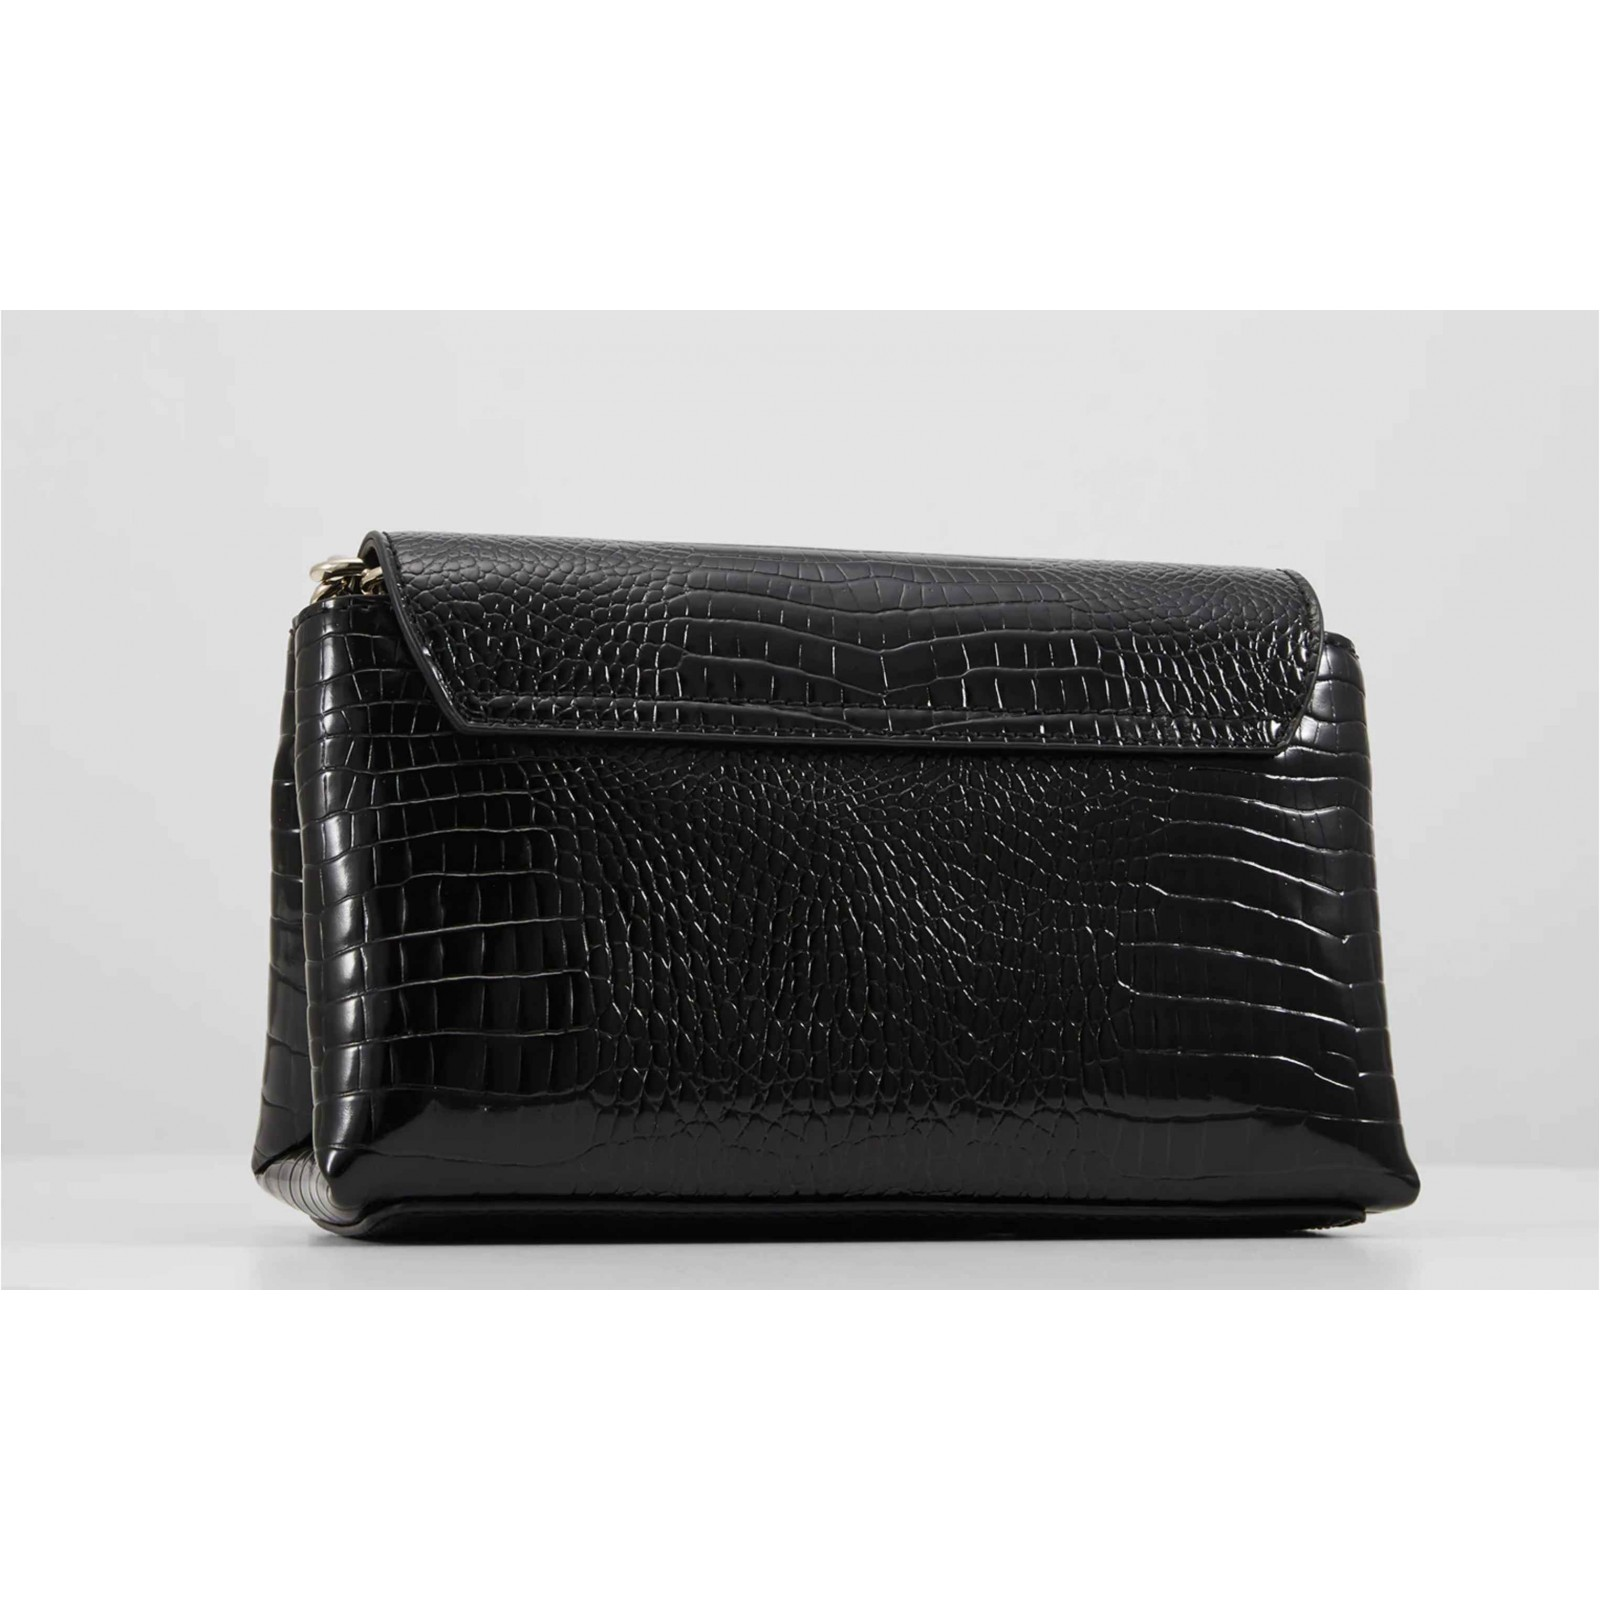 Borsa tracolla Guess Uptown Chic mini xbody flap ecopelle stampa cocco black BS20GU189